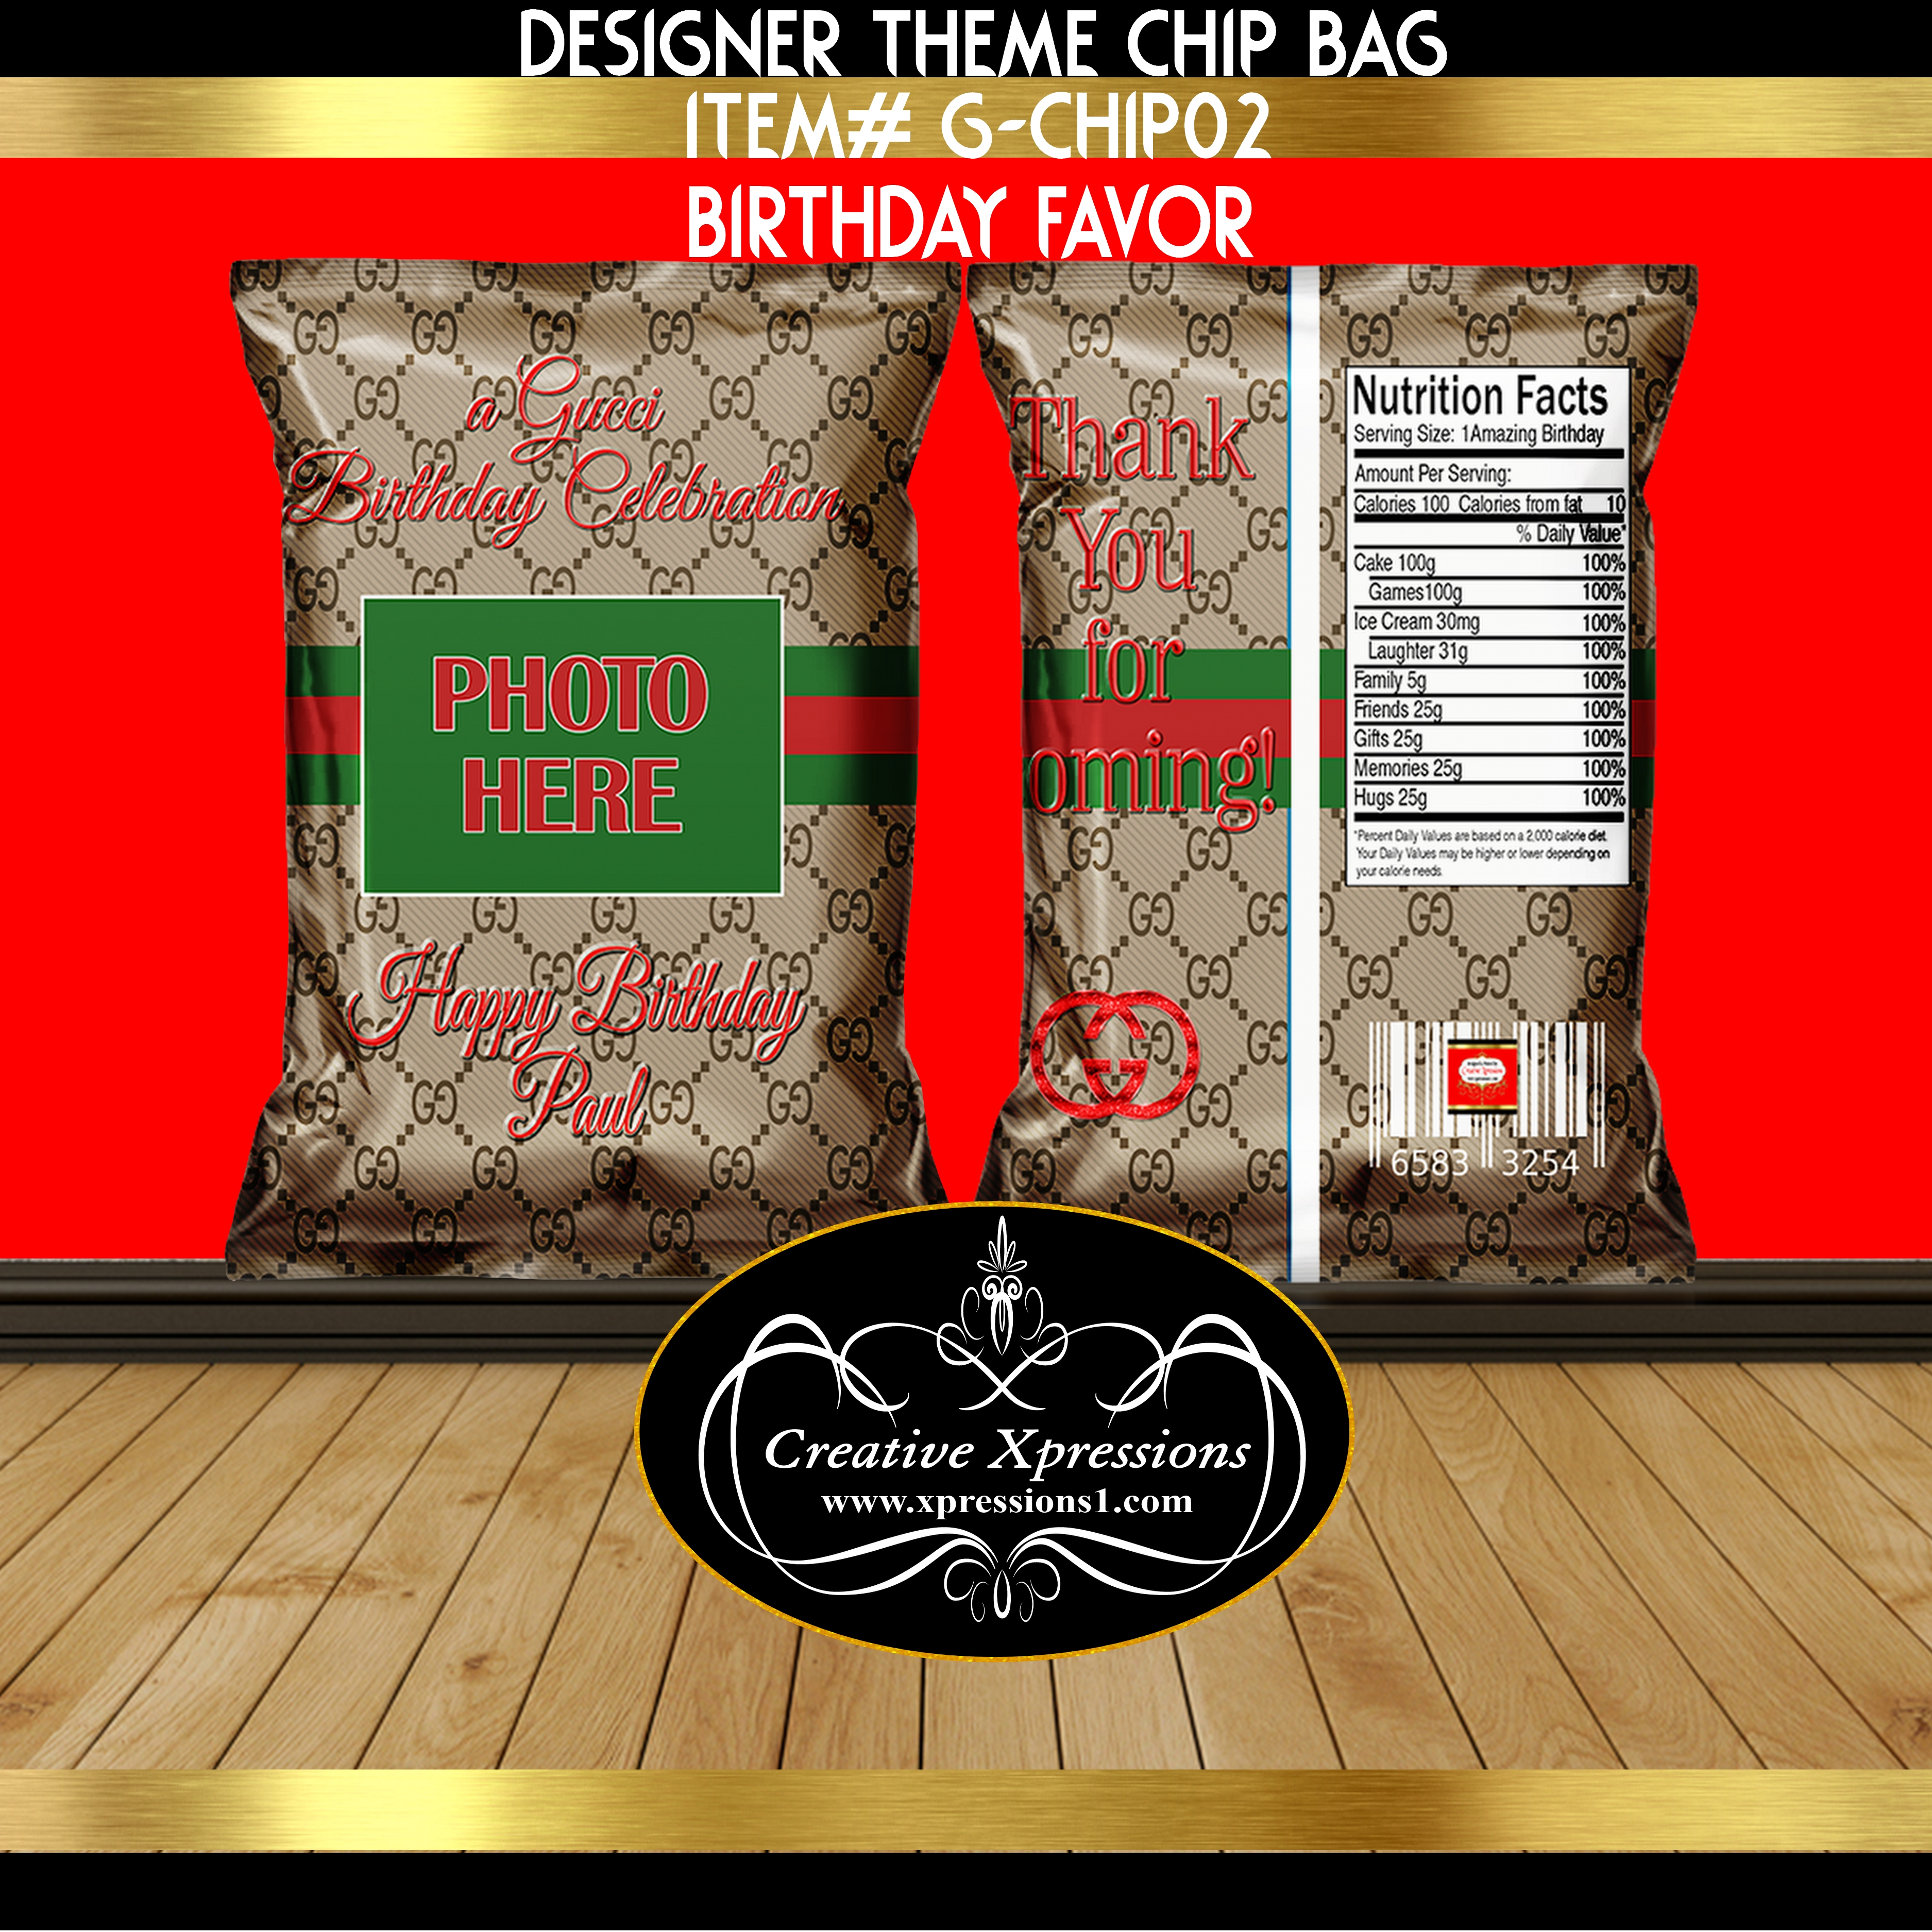 Gucci  Inspired Chip Bag